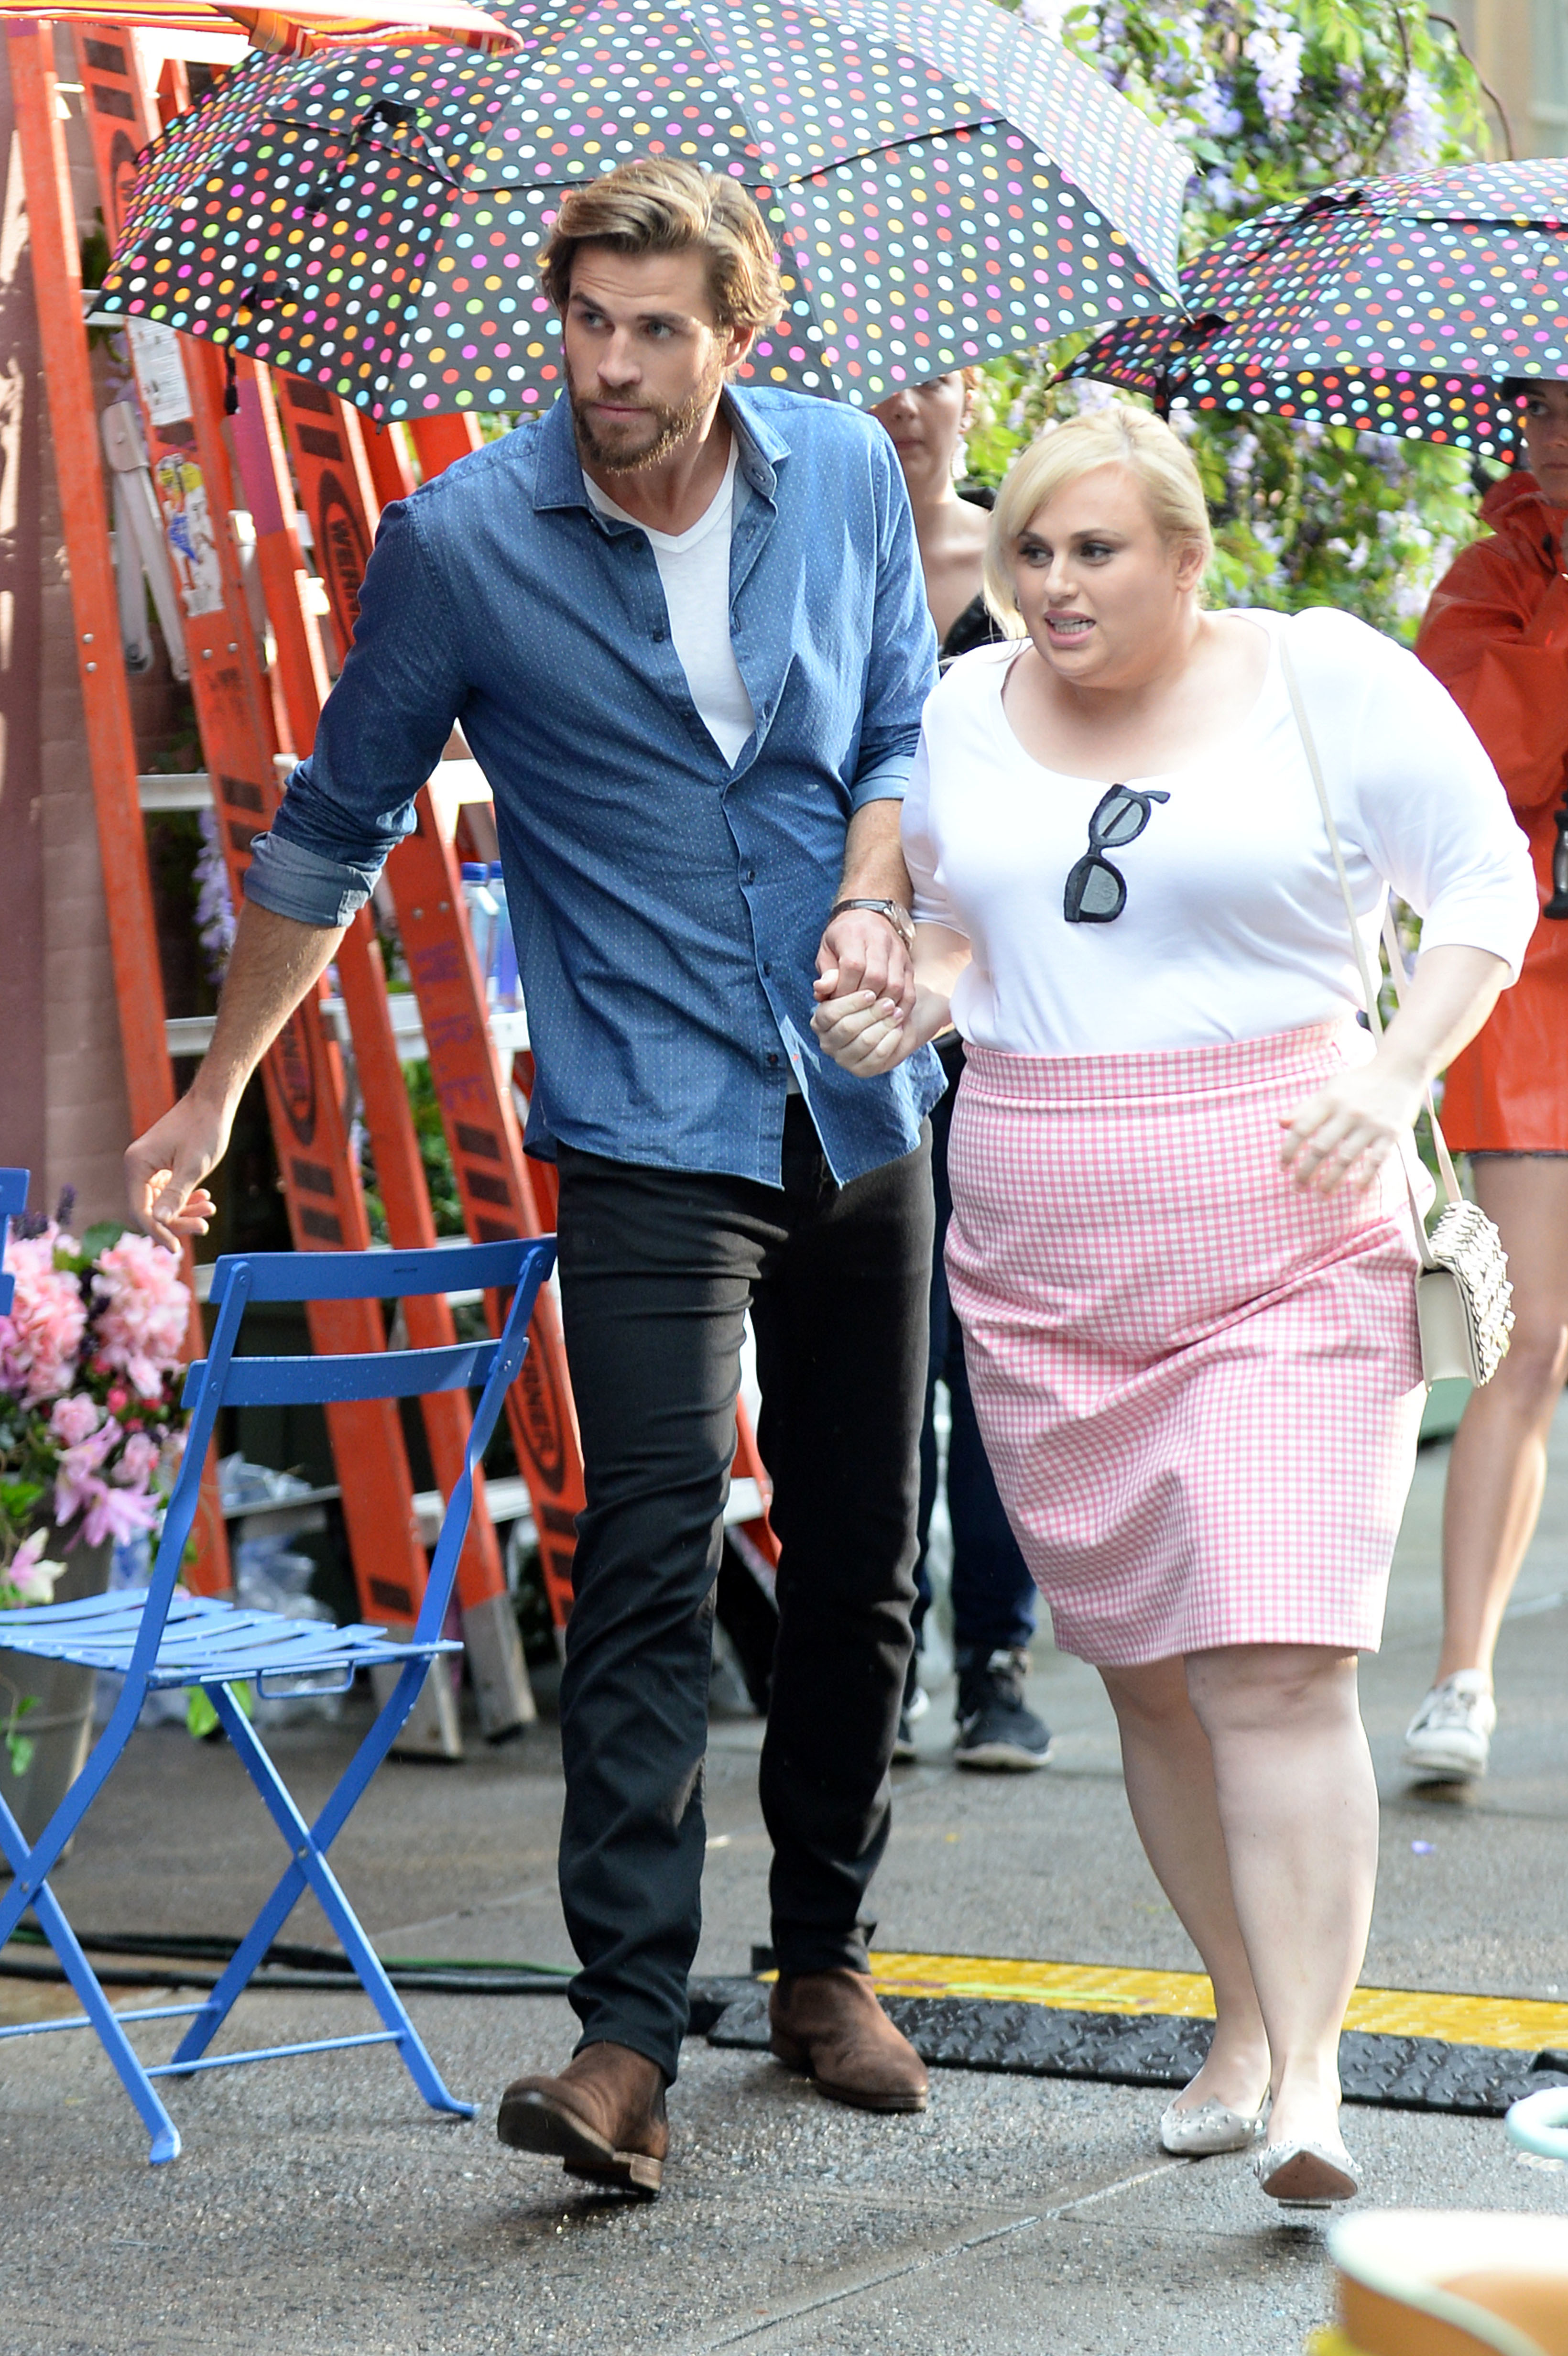 """Liam Hemsworth and Rebel Wilson were spotted filming """"Isn't It Romantic"""" in New York City on July 22, 2017."""